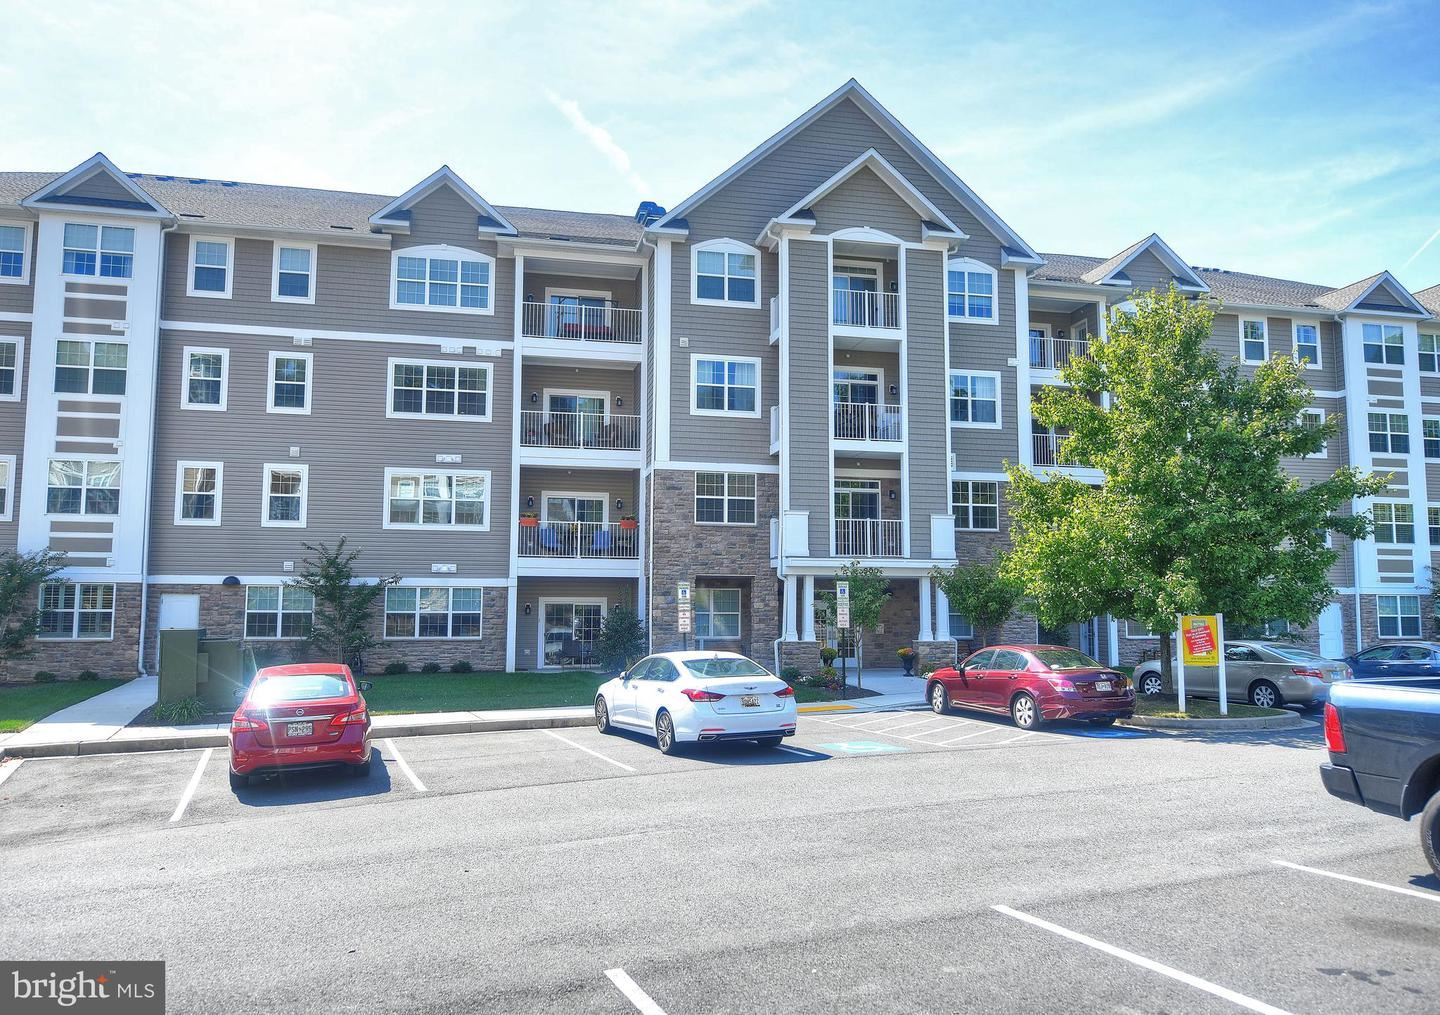 900 MACPHAIL WOODS XING #3A, Bel Air, MD 21015 - MLS#: MDHR258812